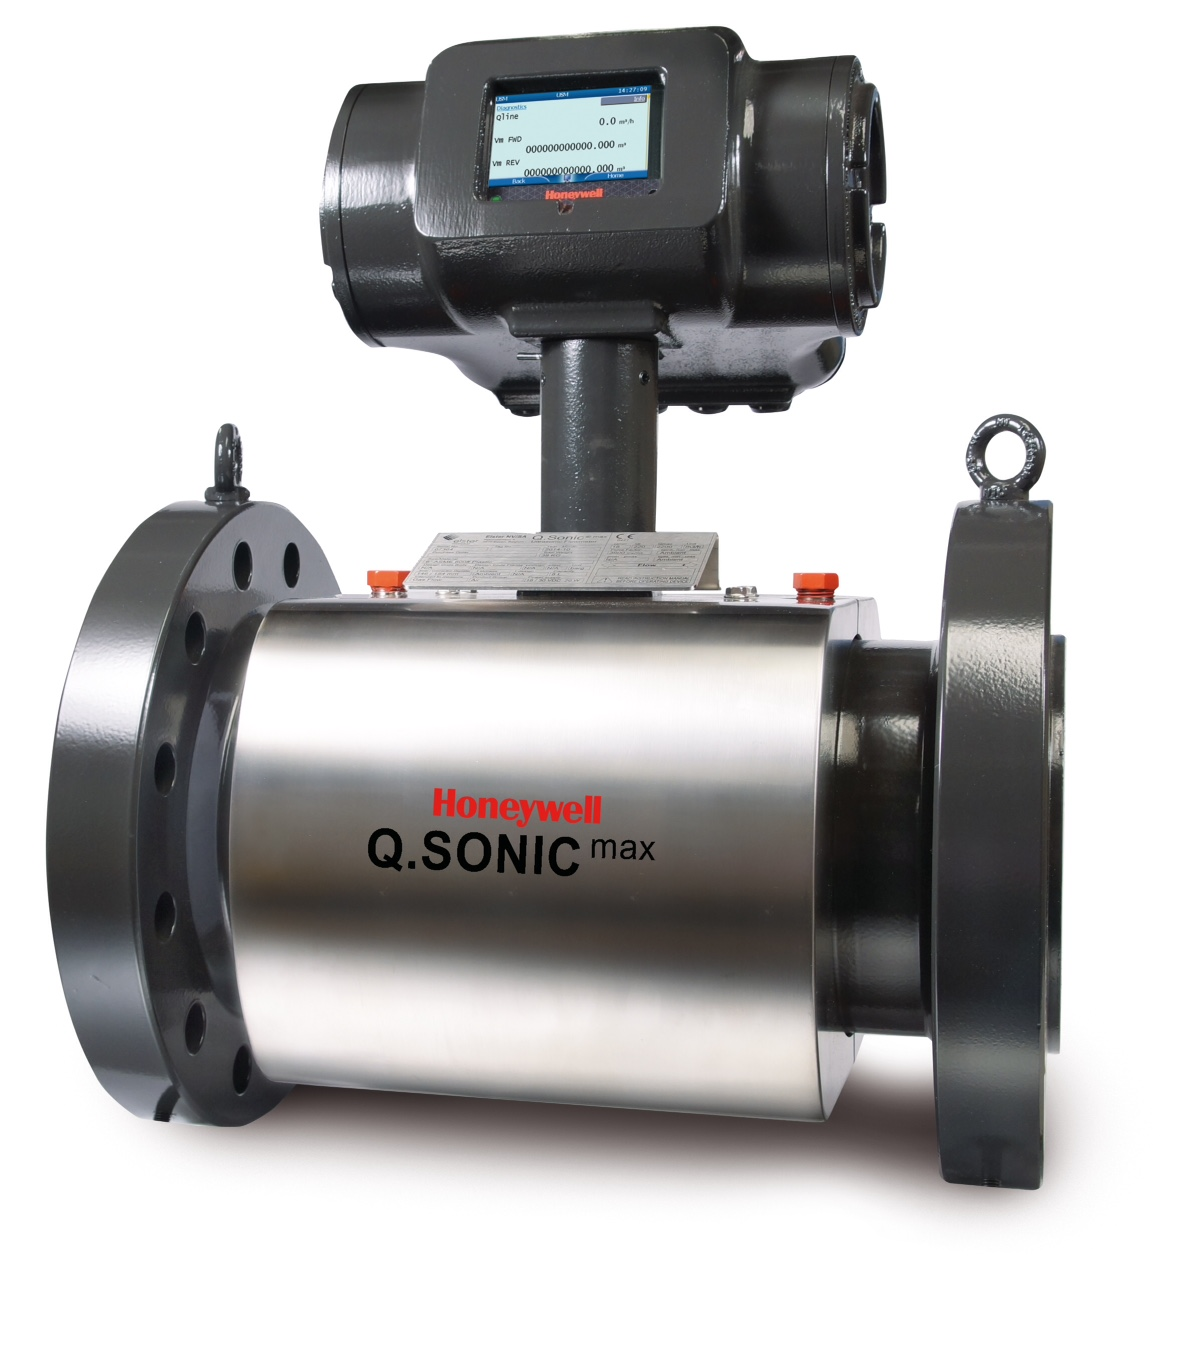 Honeywell releases Q.Sonicmax  ultrasonic gas flow meter